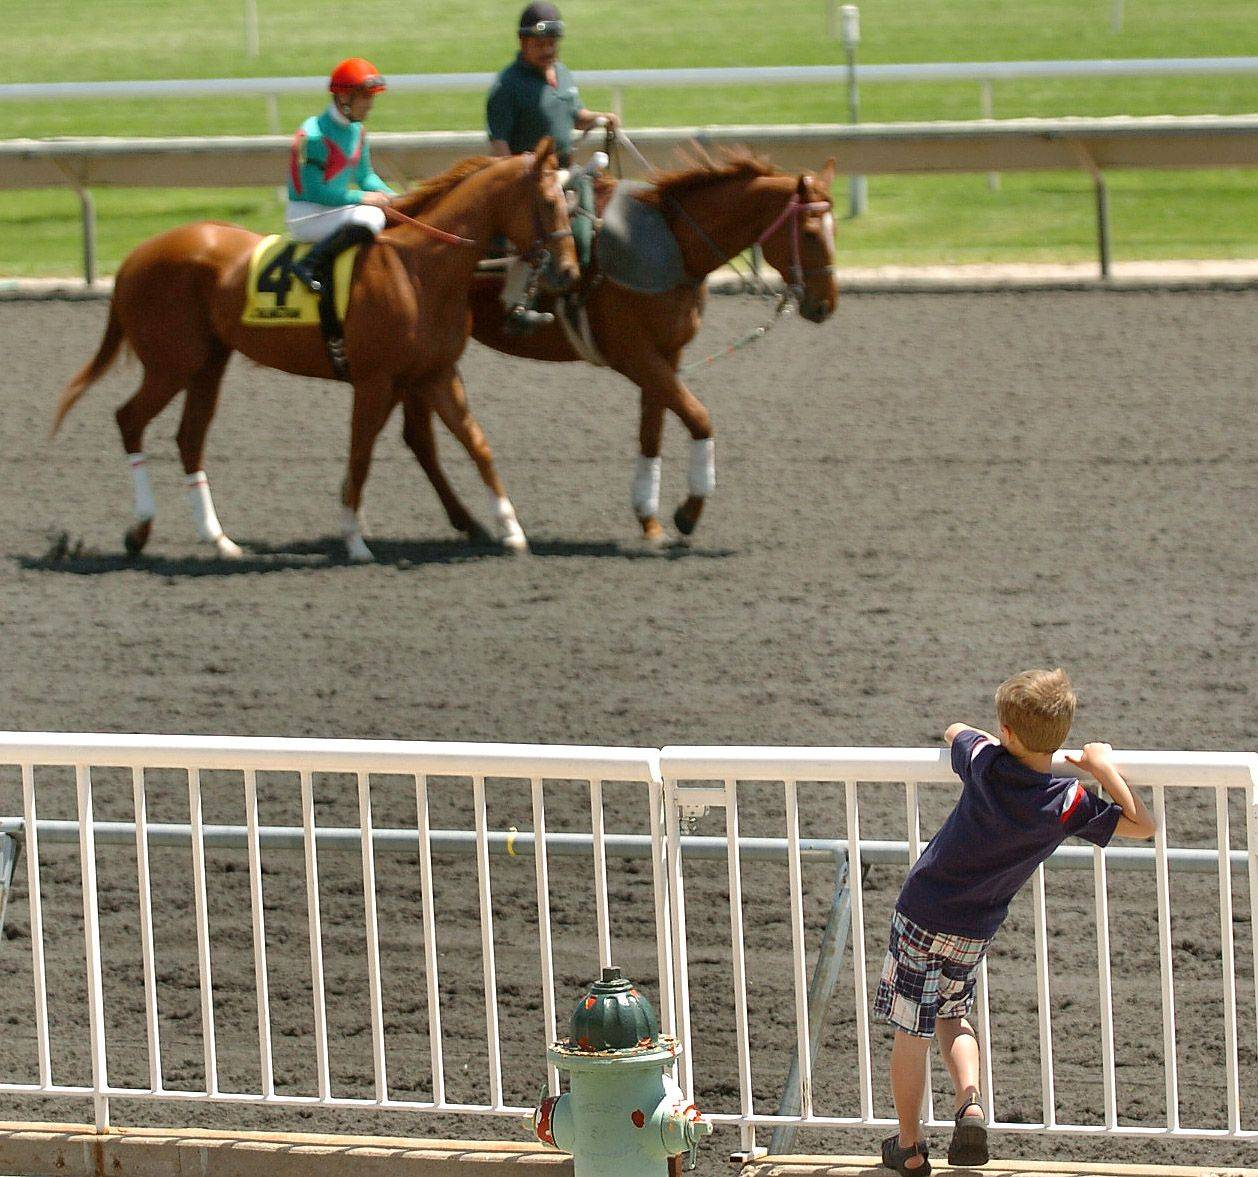 Kids aren't allowed near slot machines, but Jimmy Kehoe, 7, watches the horses up close during a visit to Arlington Park while his grandparents Lyn and John Bray of Bourbonnais and his great-grandmother Edna Bray of San Diego watch from the stands.